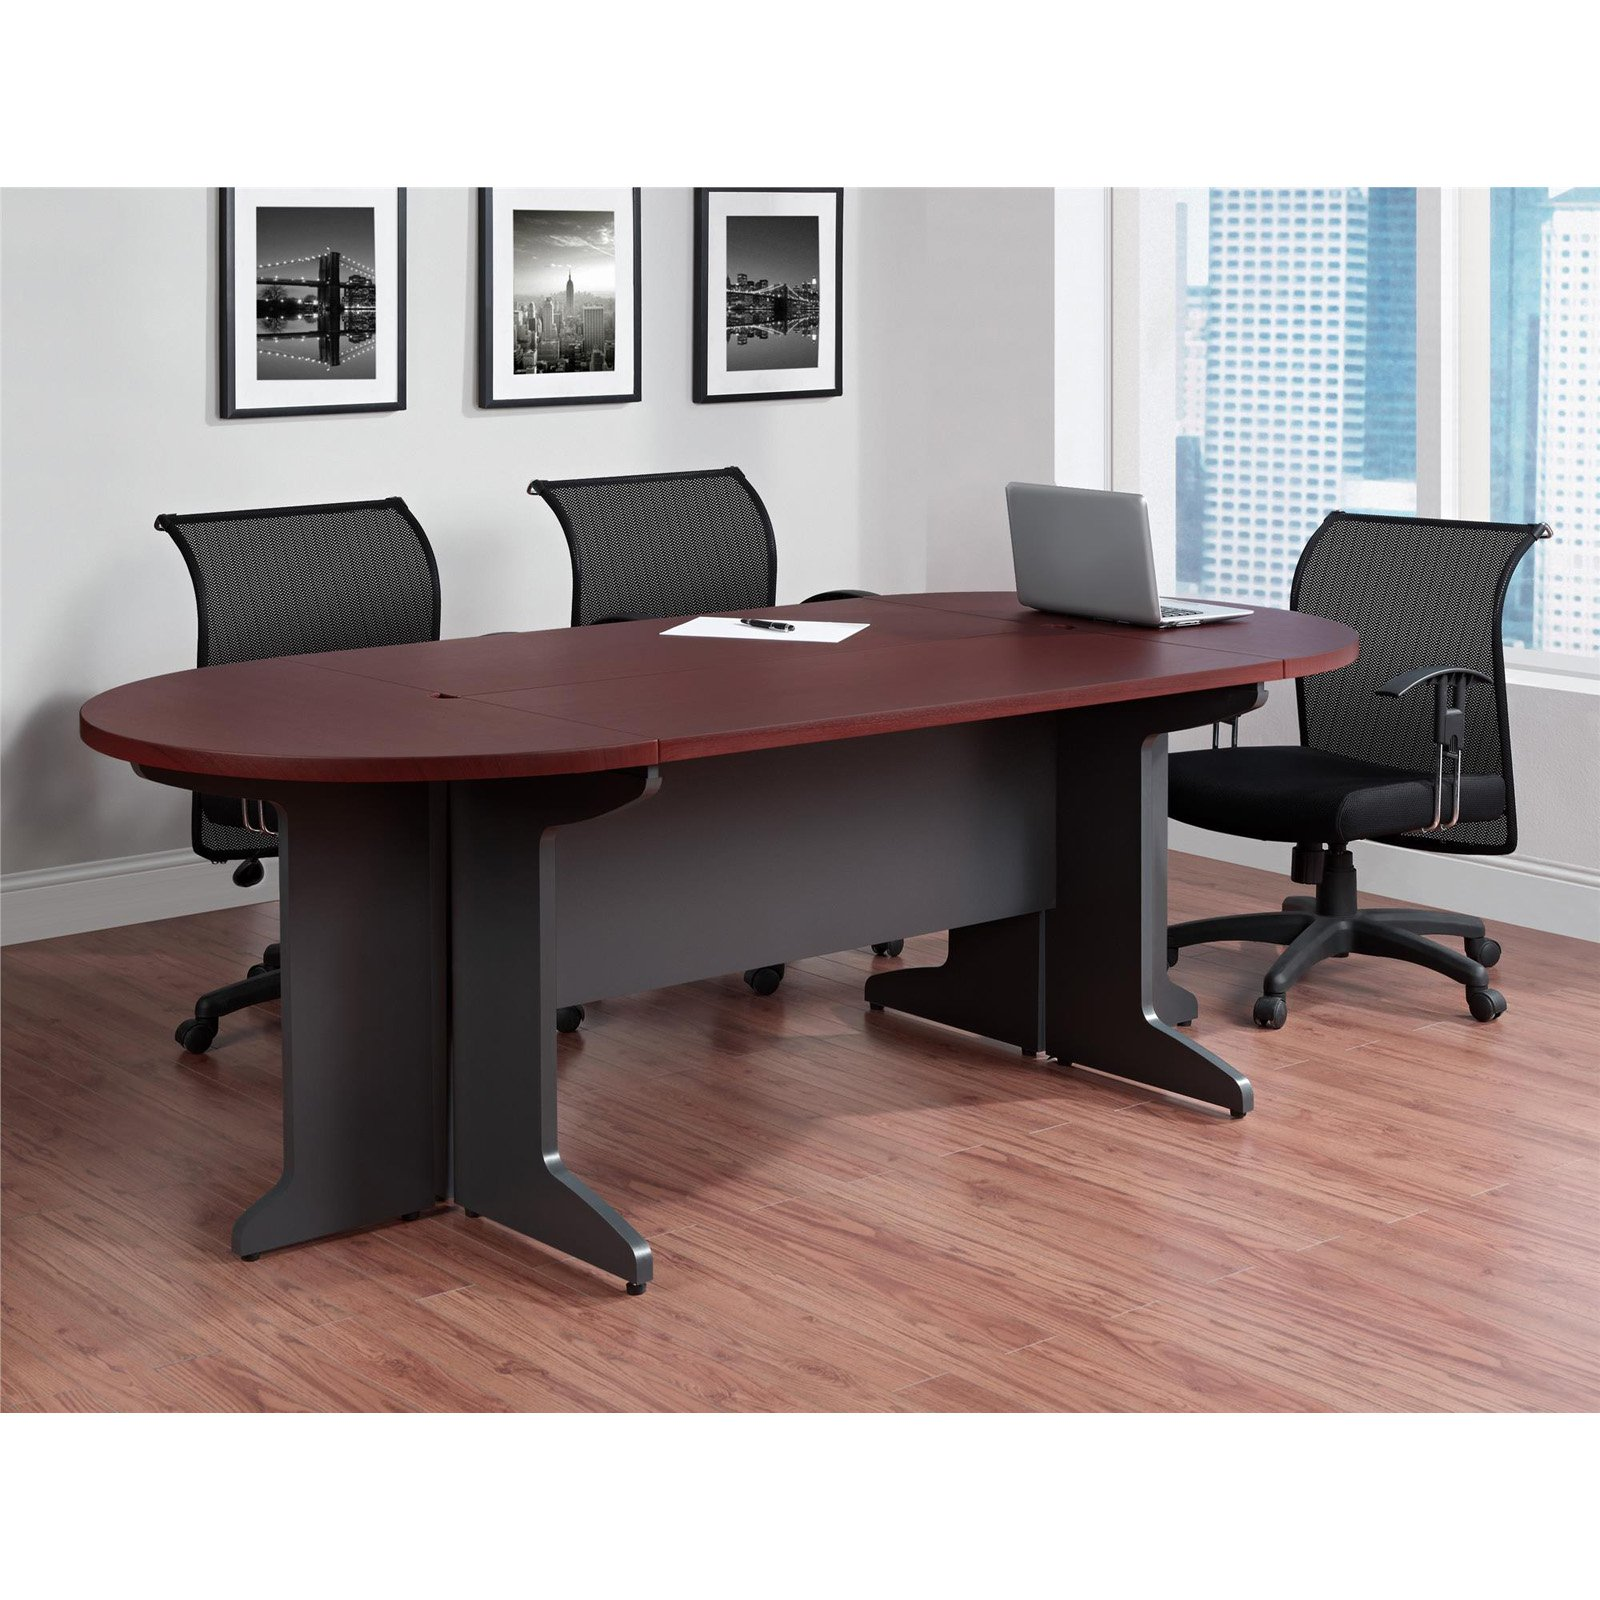 Ameriwood Home Pursuit Small Conference Table Bundle, Cherry